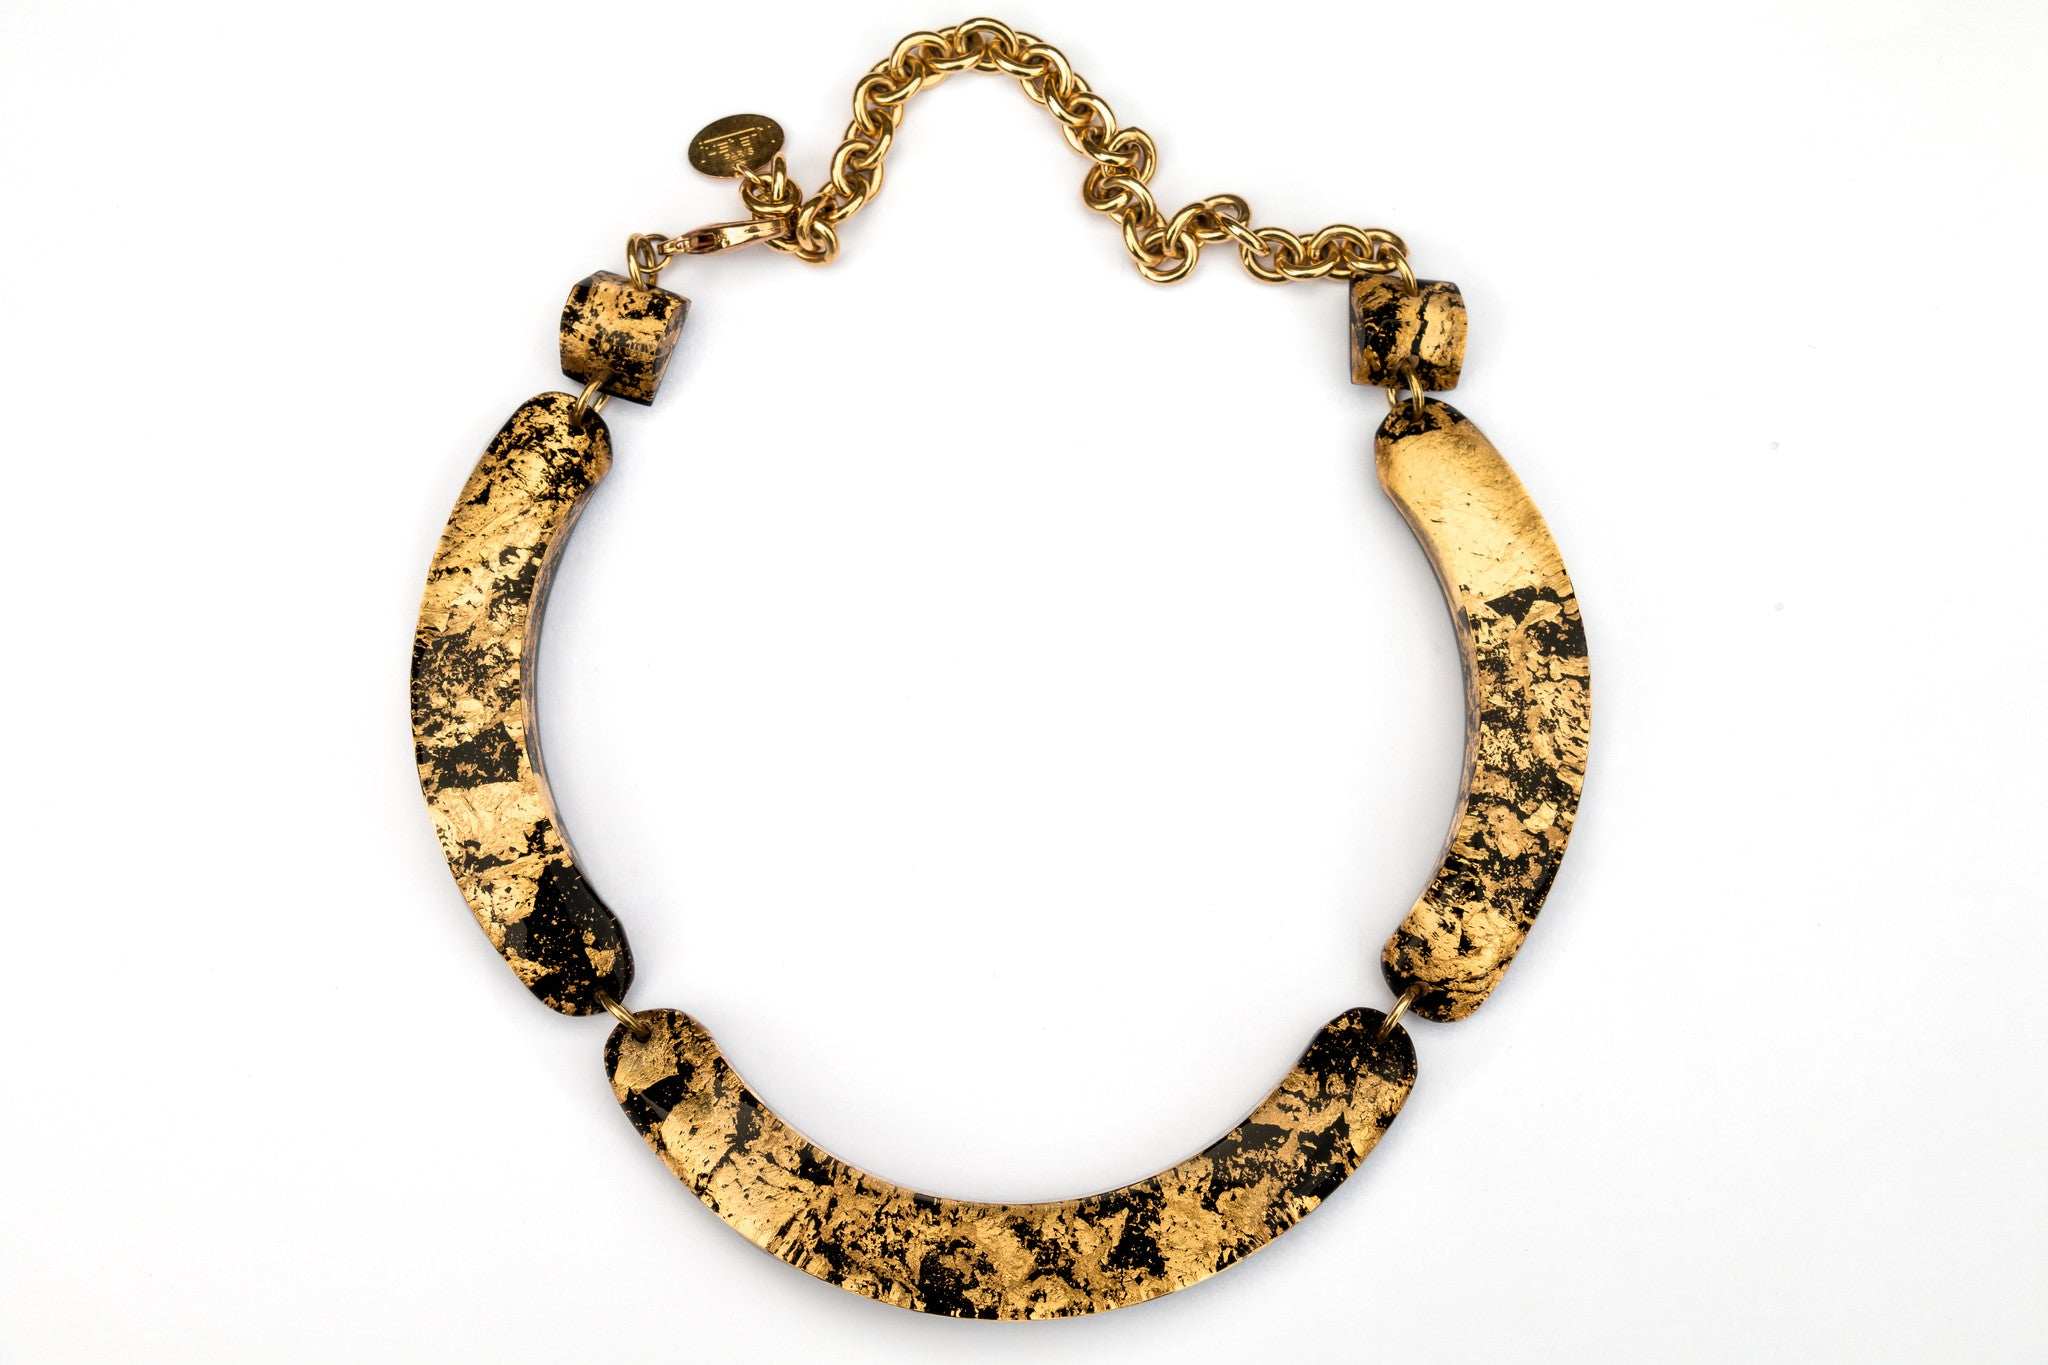 Necklace - Noir Chic / Collier